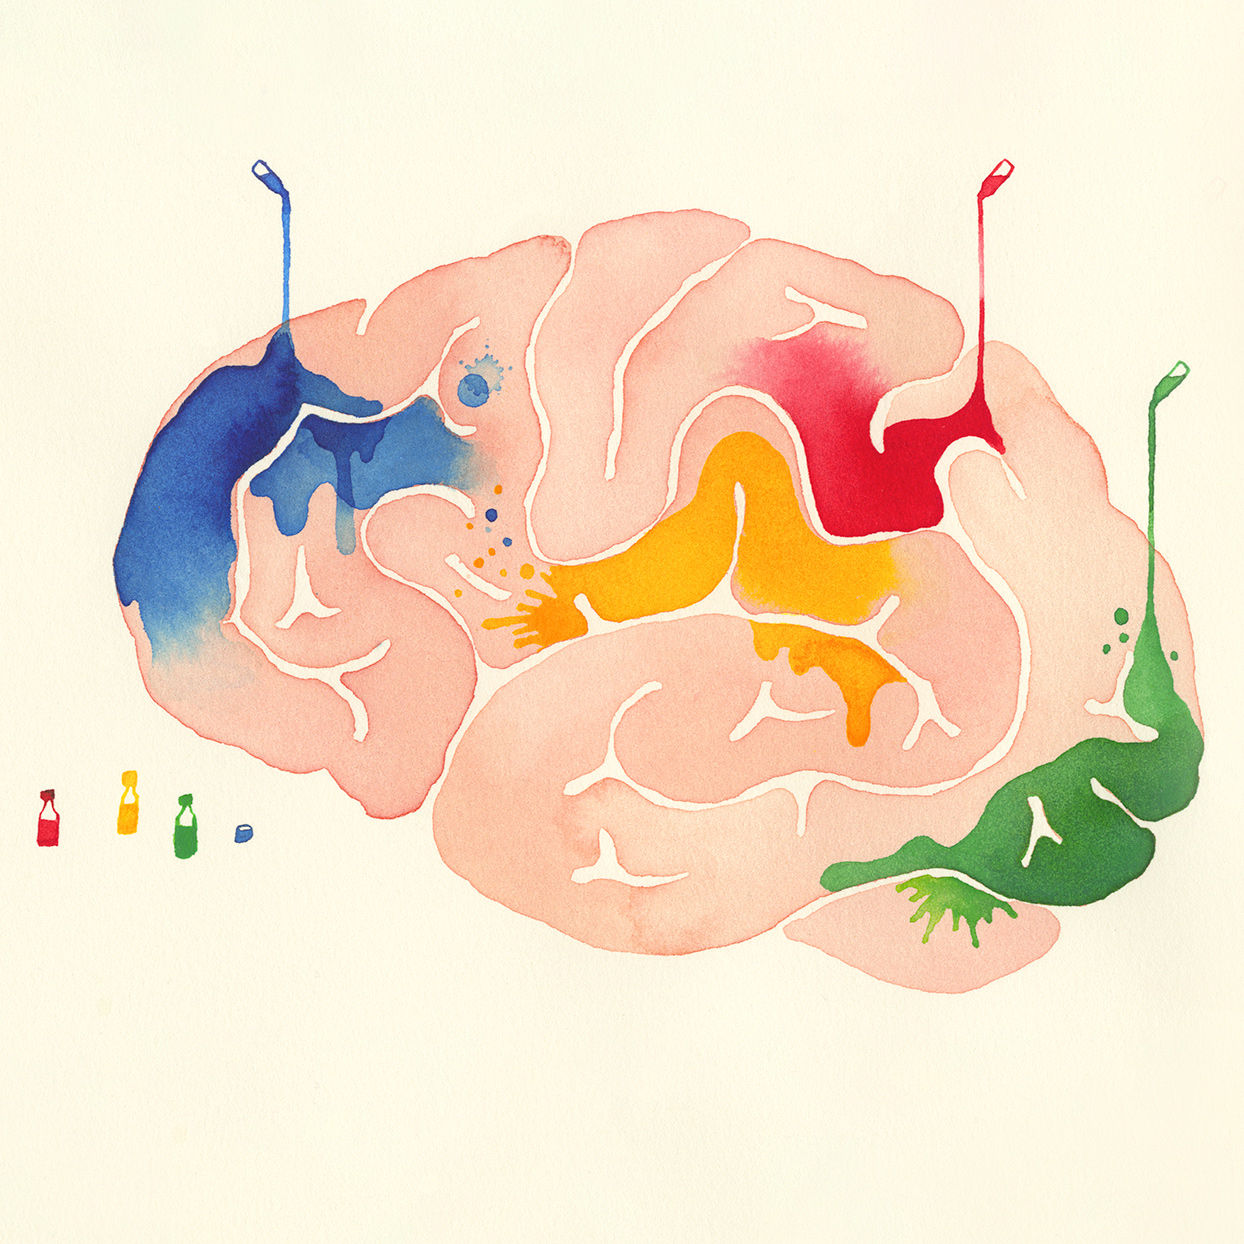 Illustration of the brain with multiple colors